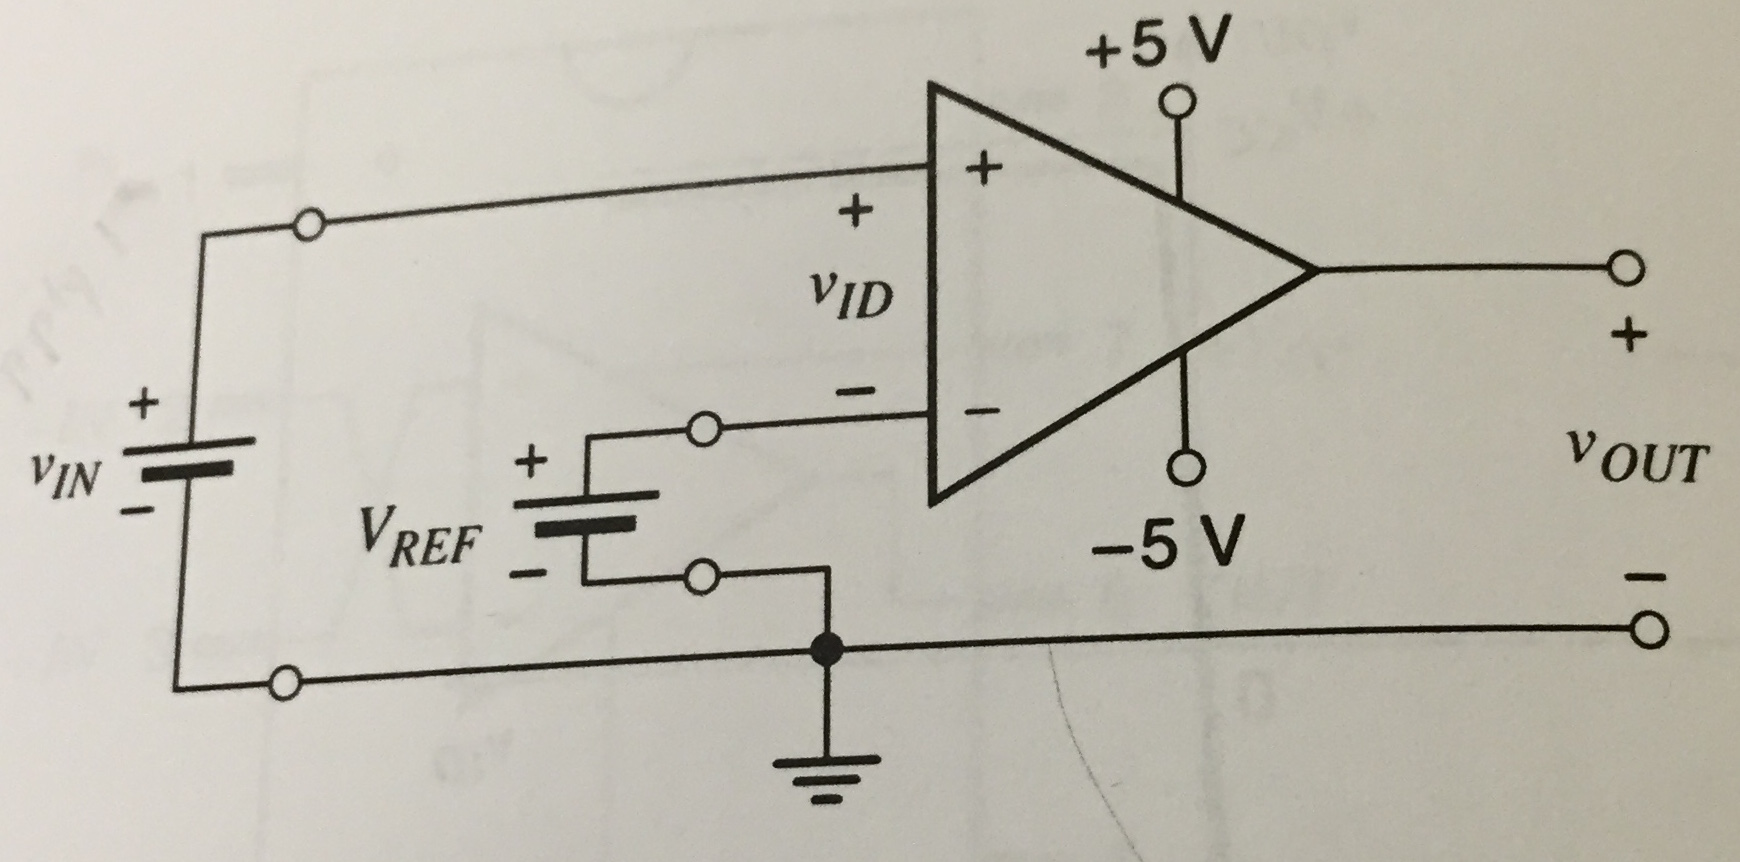 Solved Op Amp As A Comparator Consider The Circuit In Diagram For Opamp Image Figure Define Vid